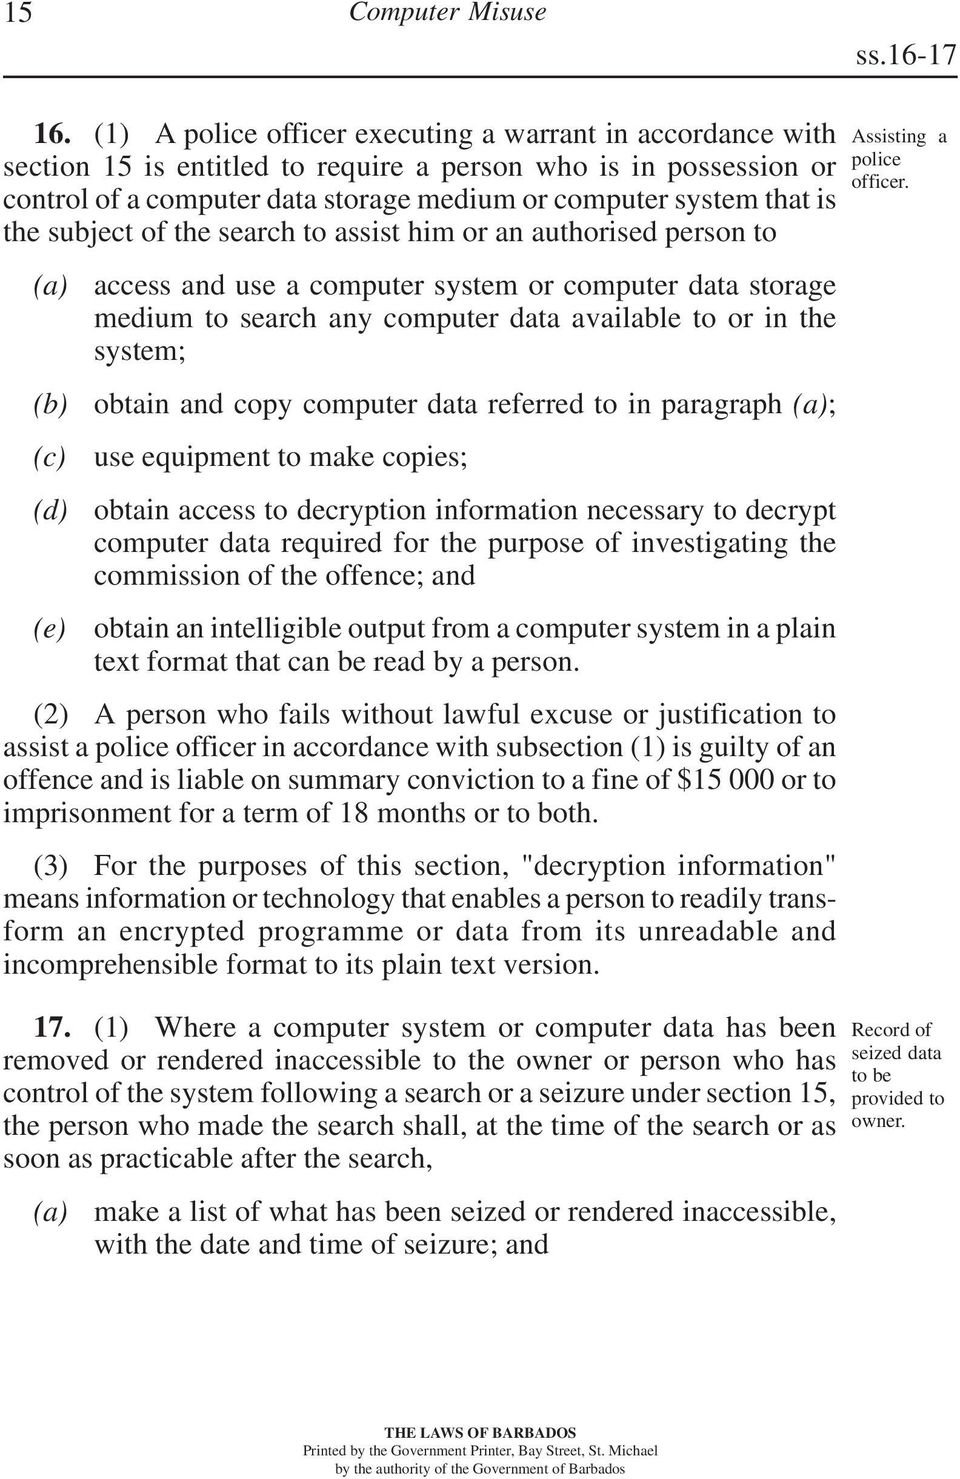 subject of the search to assist him or an authorised person to (d) (e) access and use a computer system or computer data storage medium to search any computer data available to or in the system;